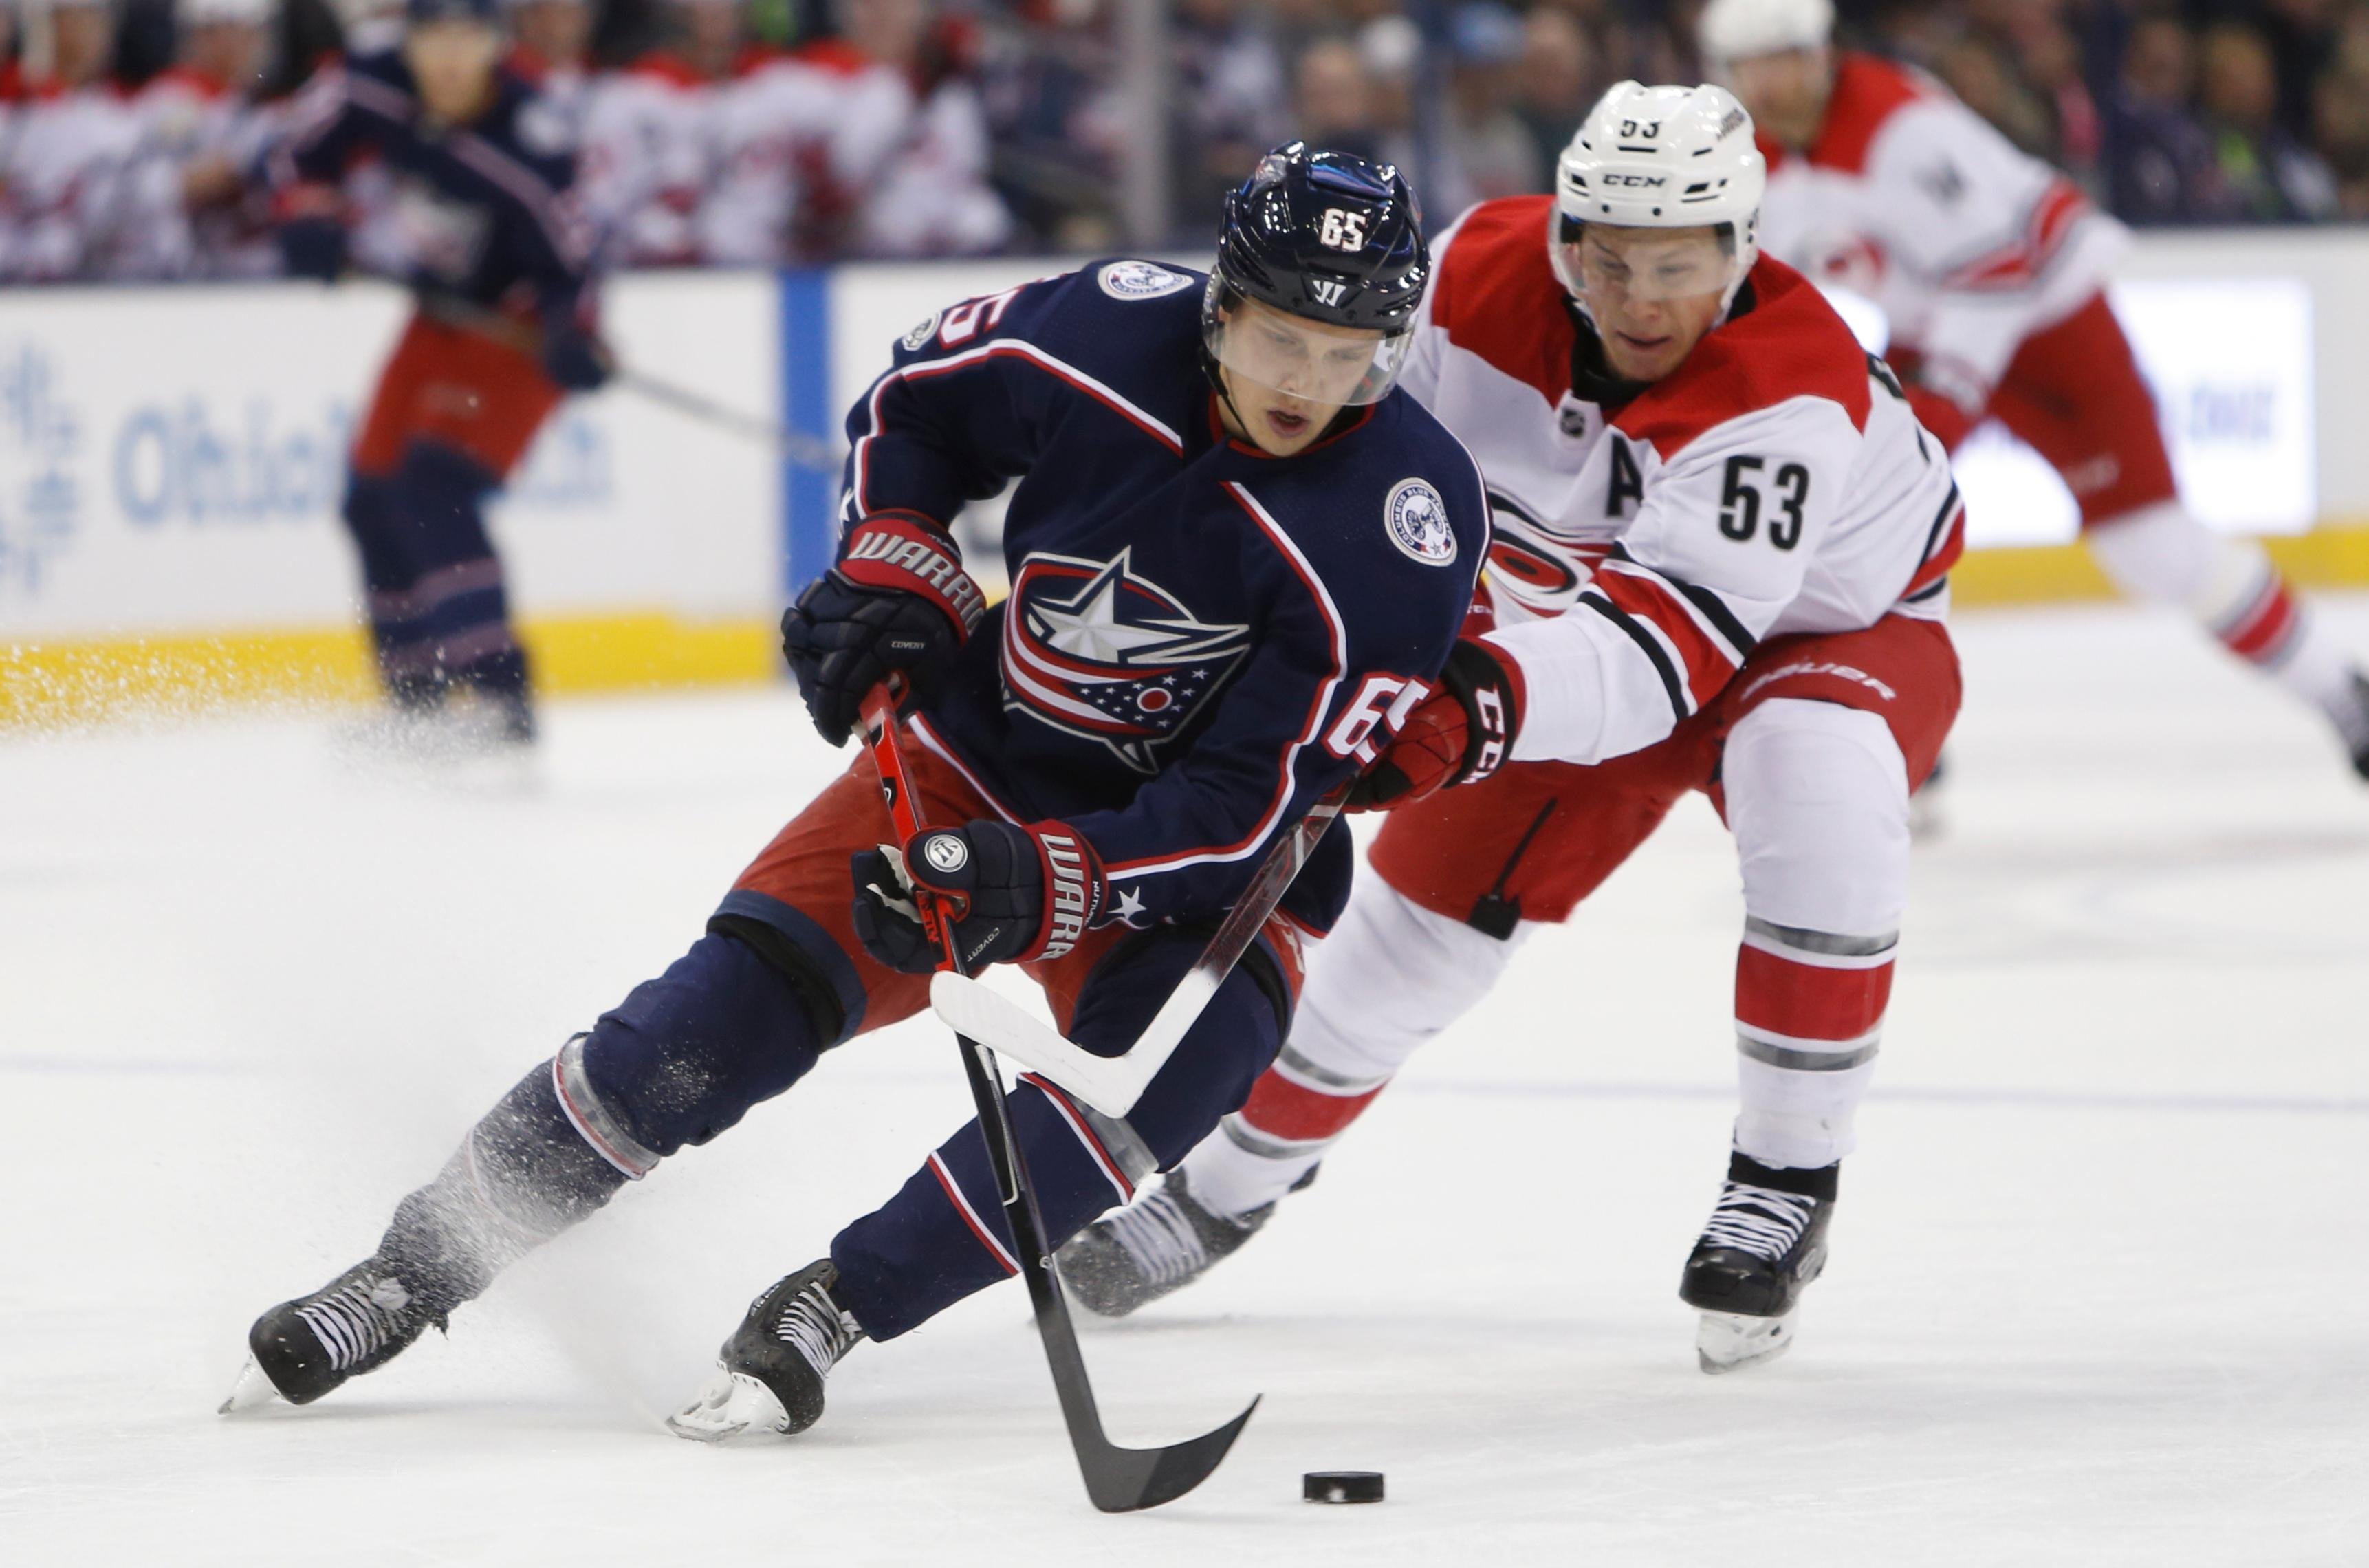 Columbus Blue Jackets' Markus Nutivaara, left, of Finland, tries to clear the puck past Carolina Hurricanes' Jeff Skinner during the first period of an NHL hockey game Friday, Nov. 10, 2017, in Columbus, Ohio. (AP Photo/Jay LaPrete)